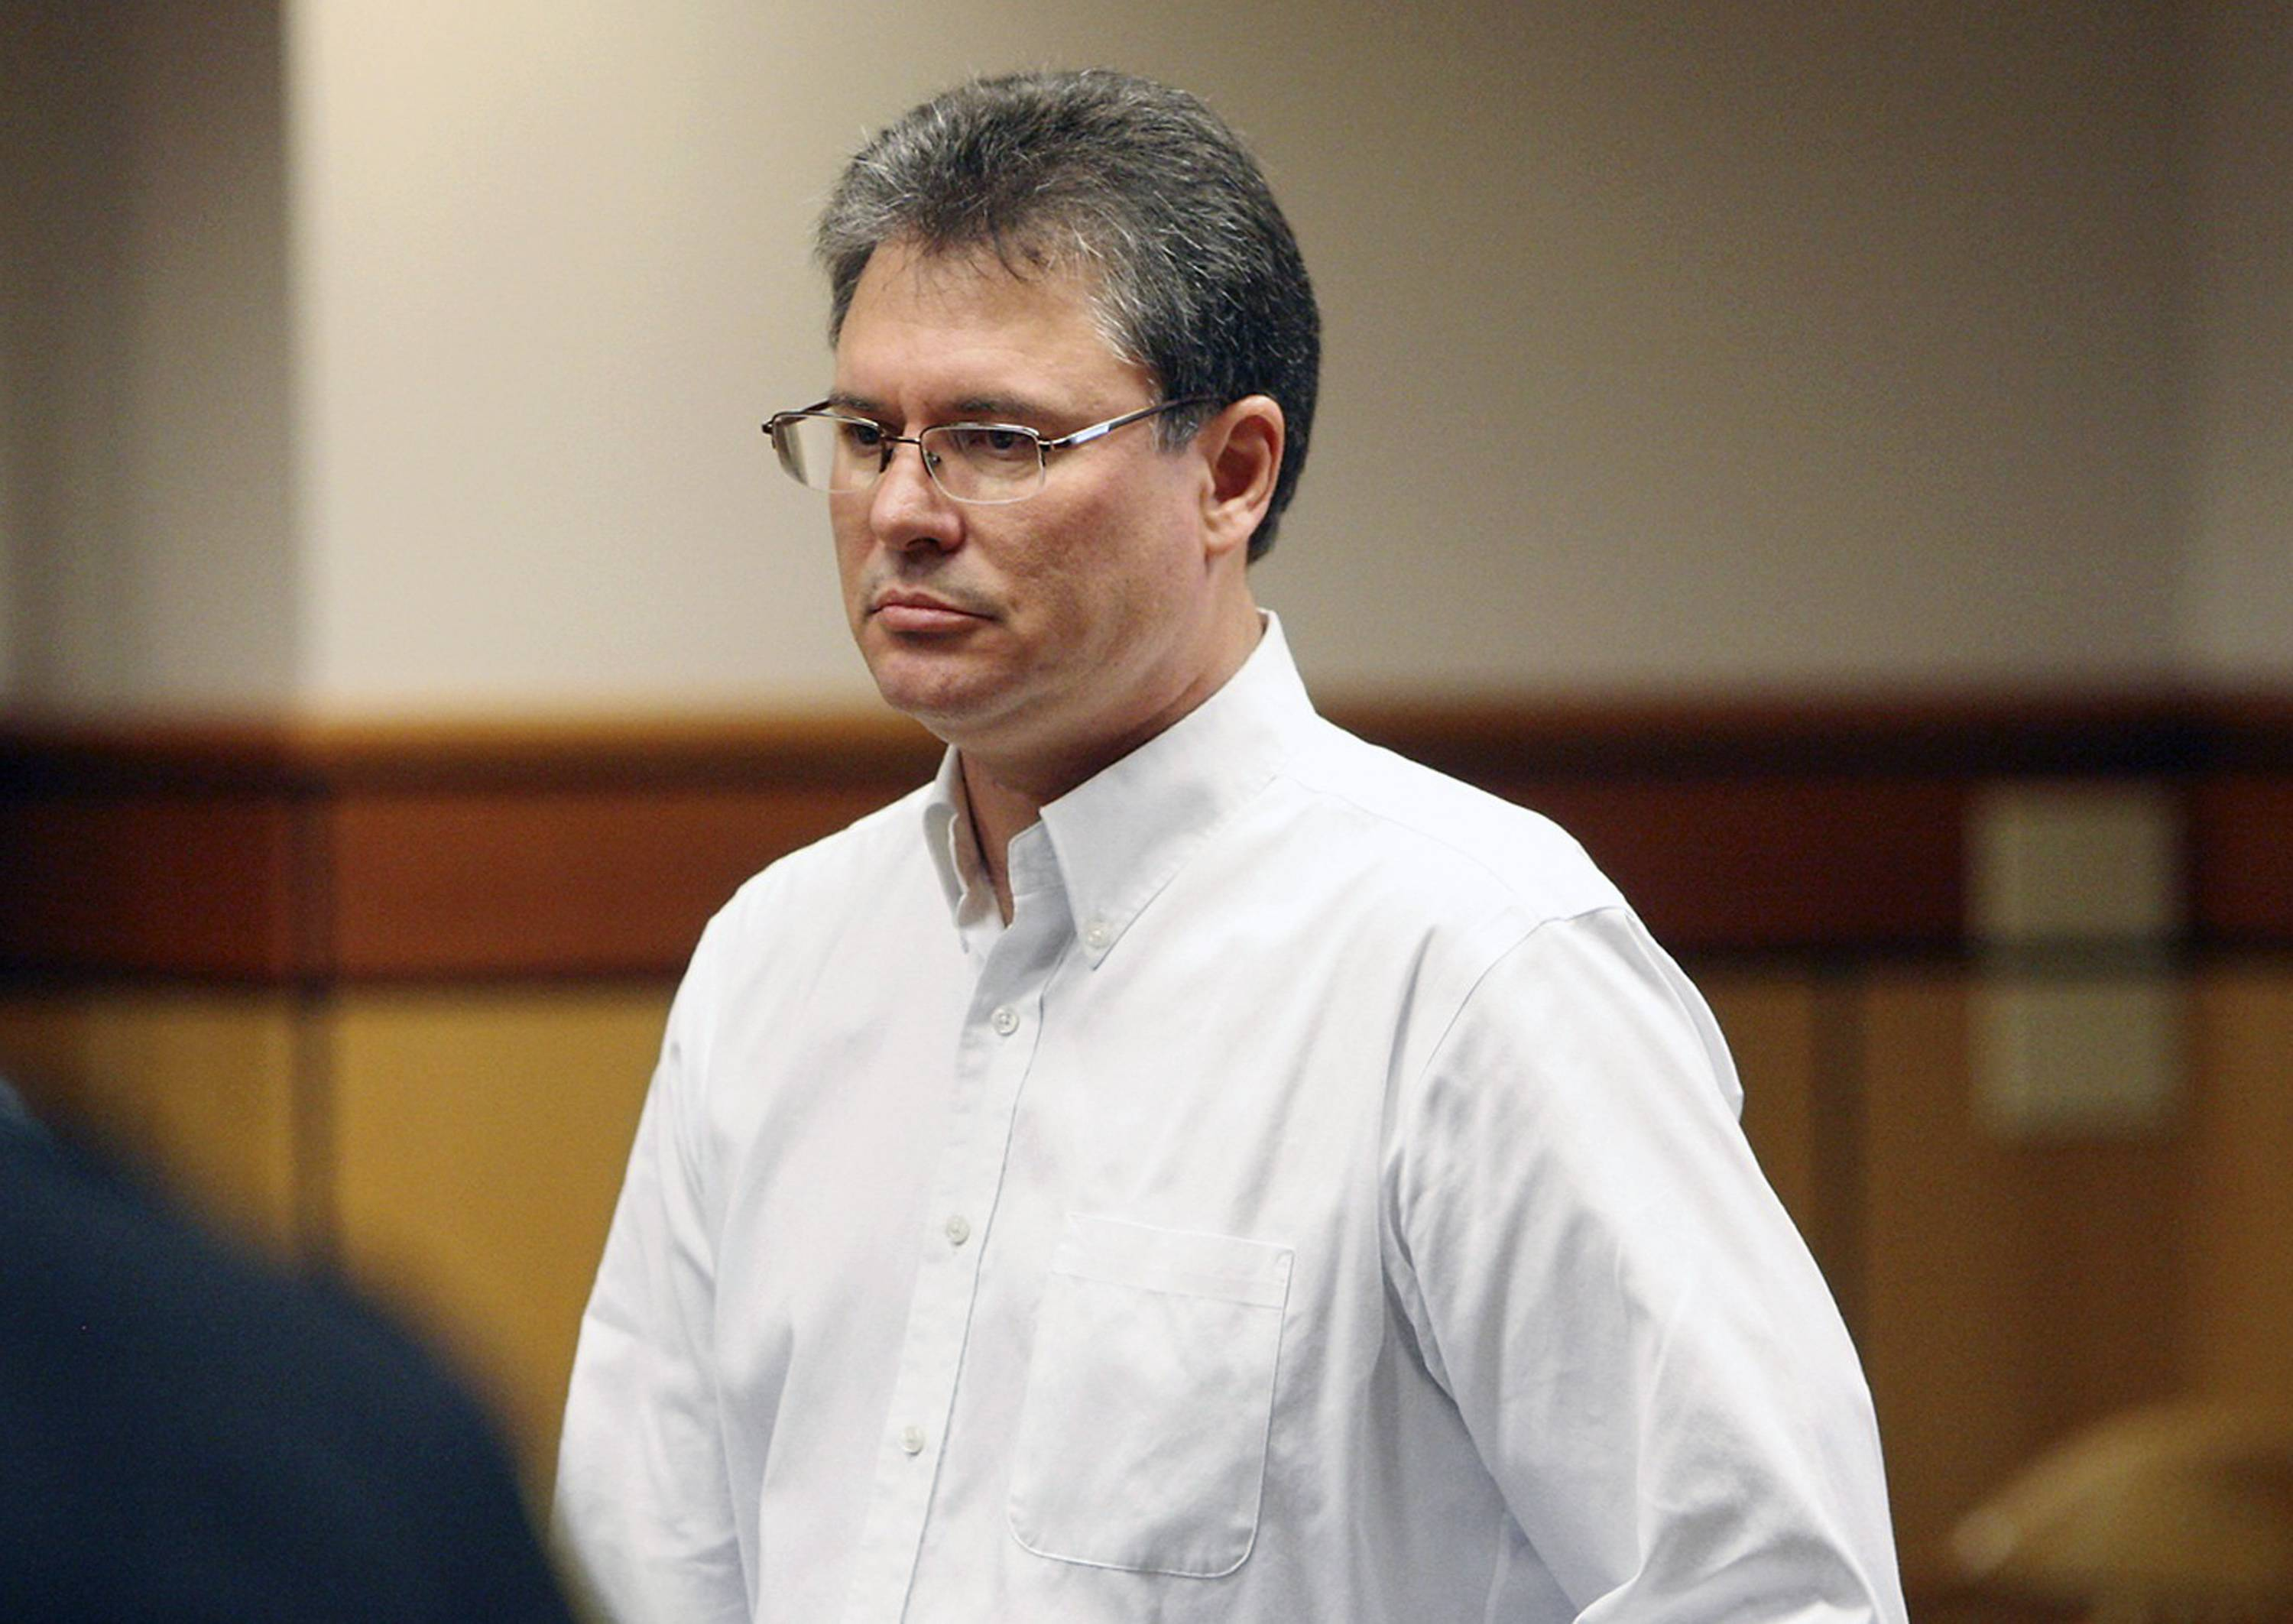 The Montana Supreme Court on Wednesday, April 30, 2014 overturned a one-month prison sentence given to Stacey Rambold, a former high school teacher convicted of raping a 14-year-old student.